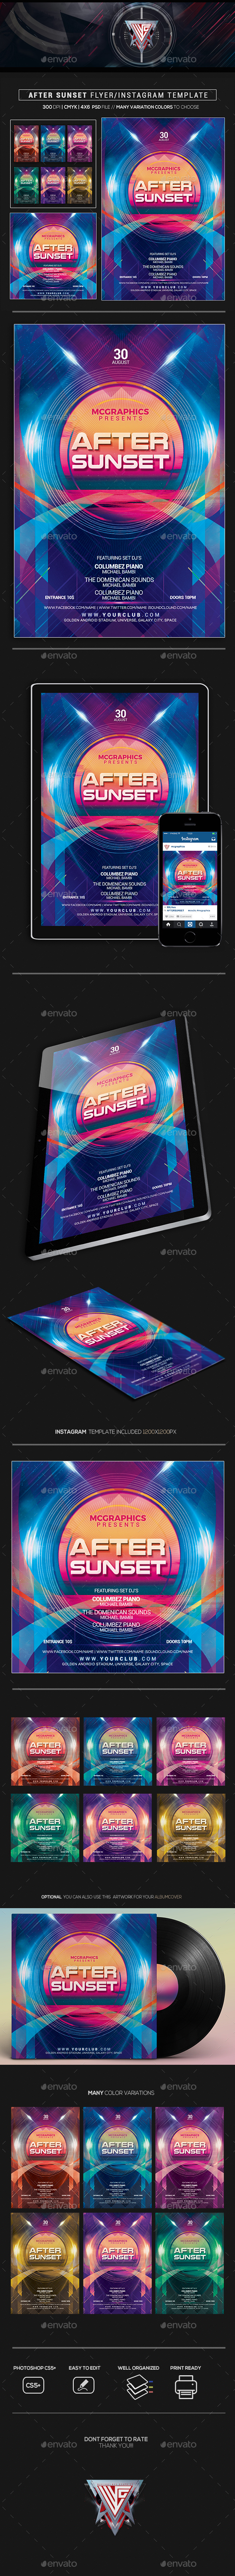 After Sunset Flyer/Instagram Template - Events Flyers